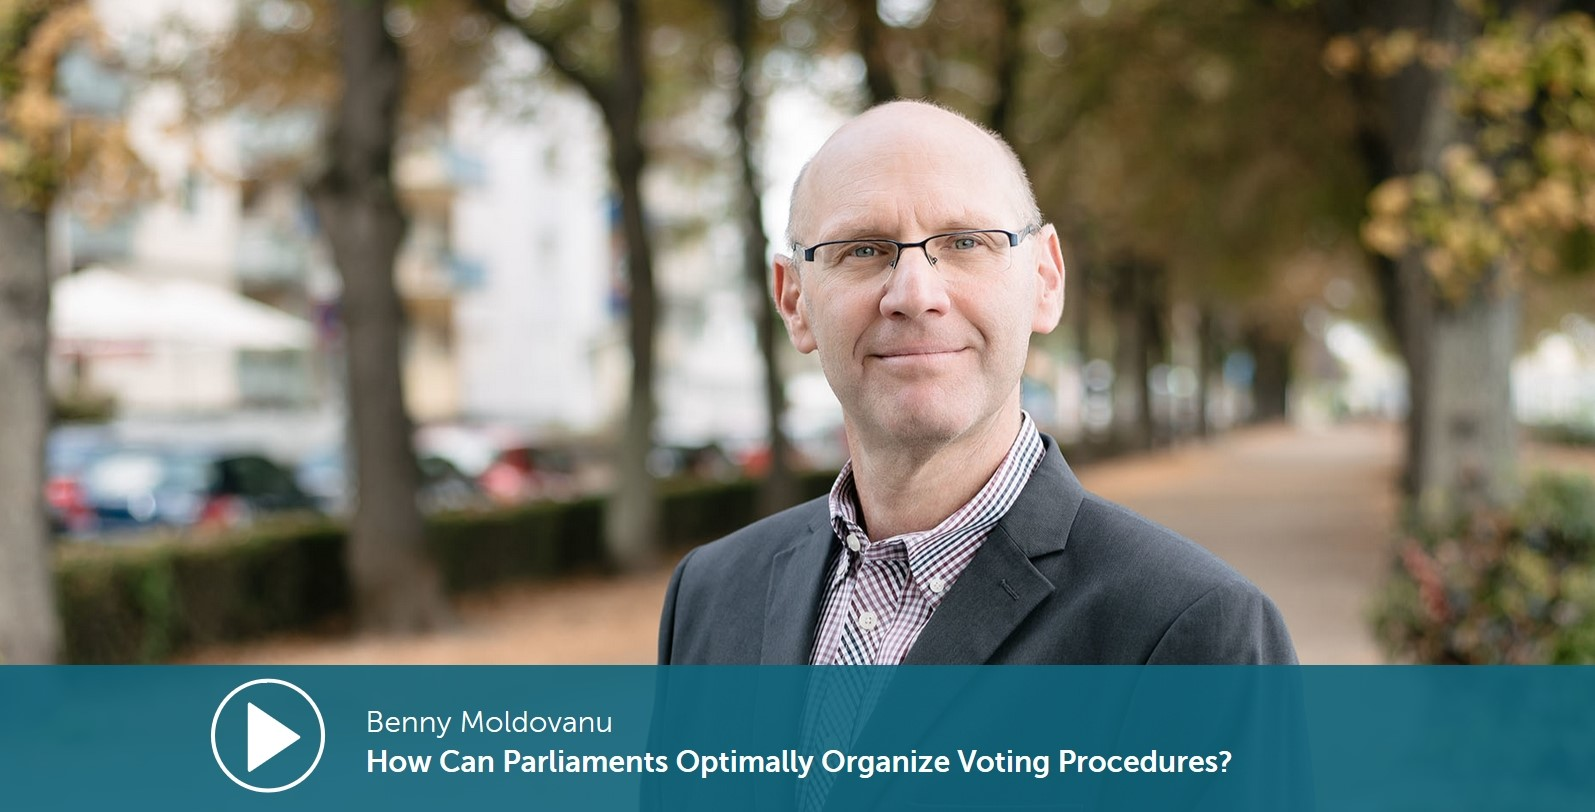 Benny Moldovanu - How Can Parliaments Optimally Organize Voting Procedures?